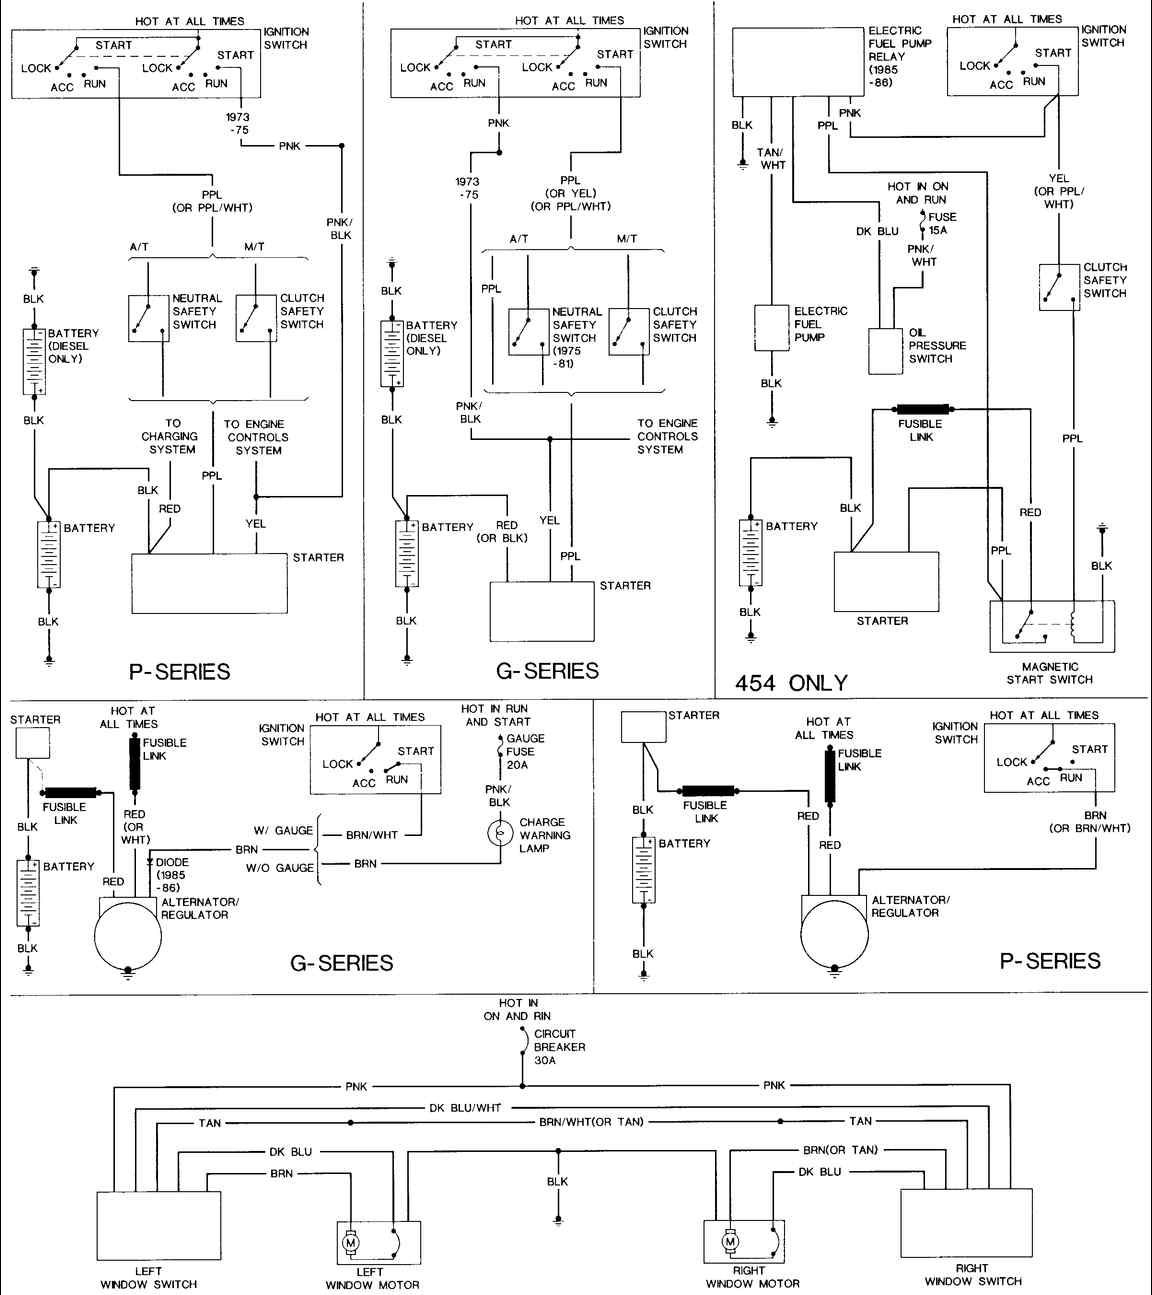 0c73623a181dc376dbb4777e2029d285 85 chevy truck wiring diagram 85 chevy van the steering column 1984 chevy silverado wiring diagram at beritabola.co